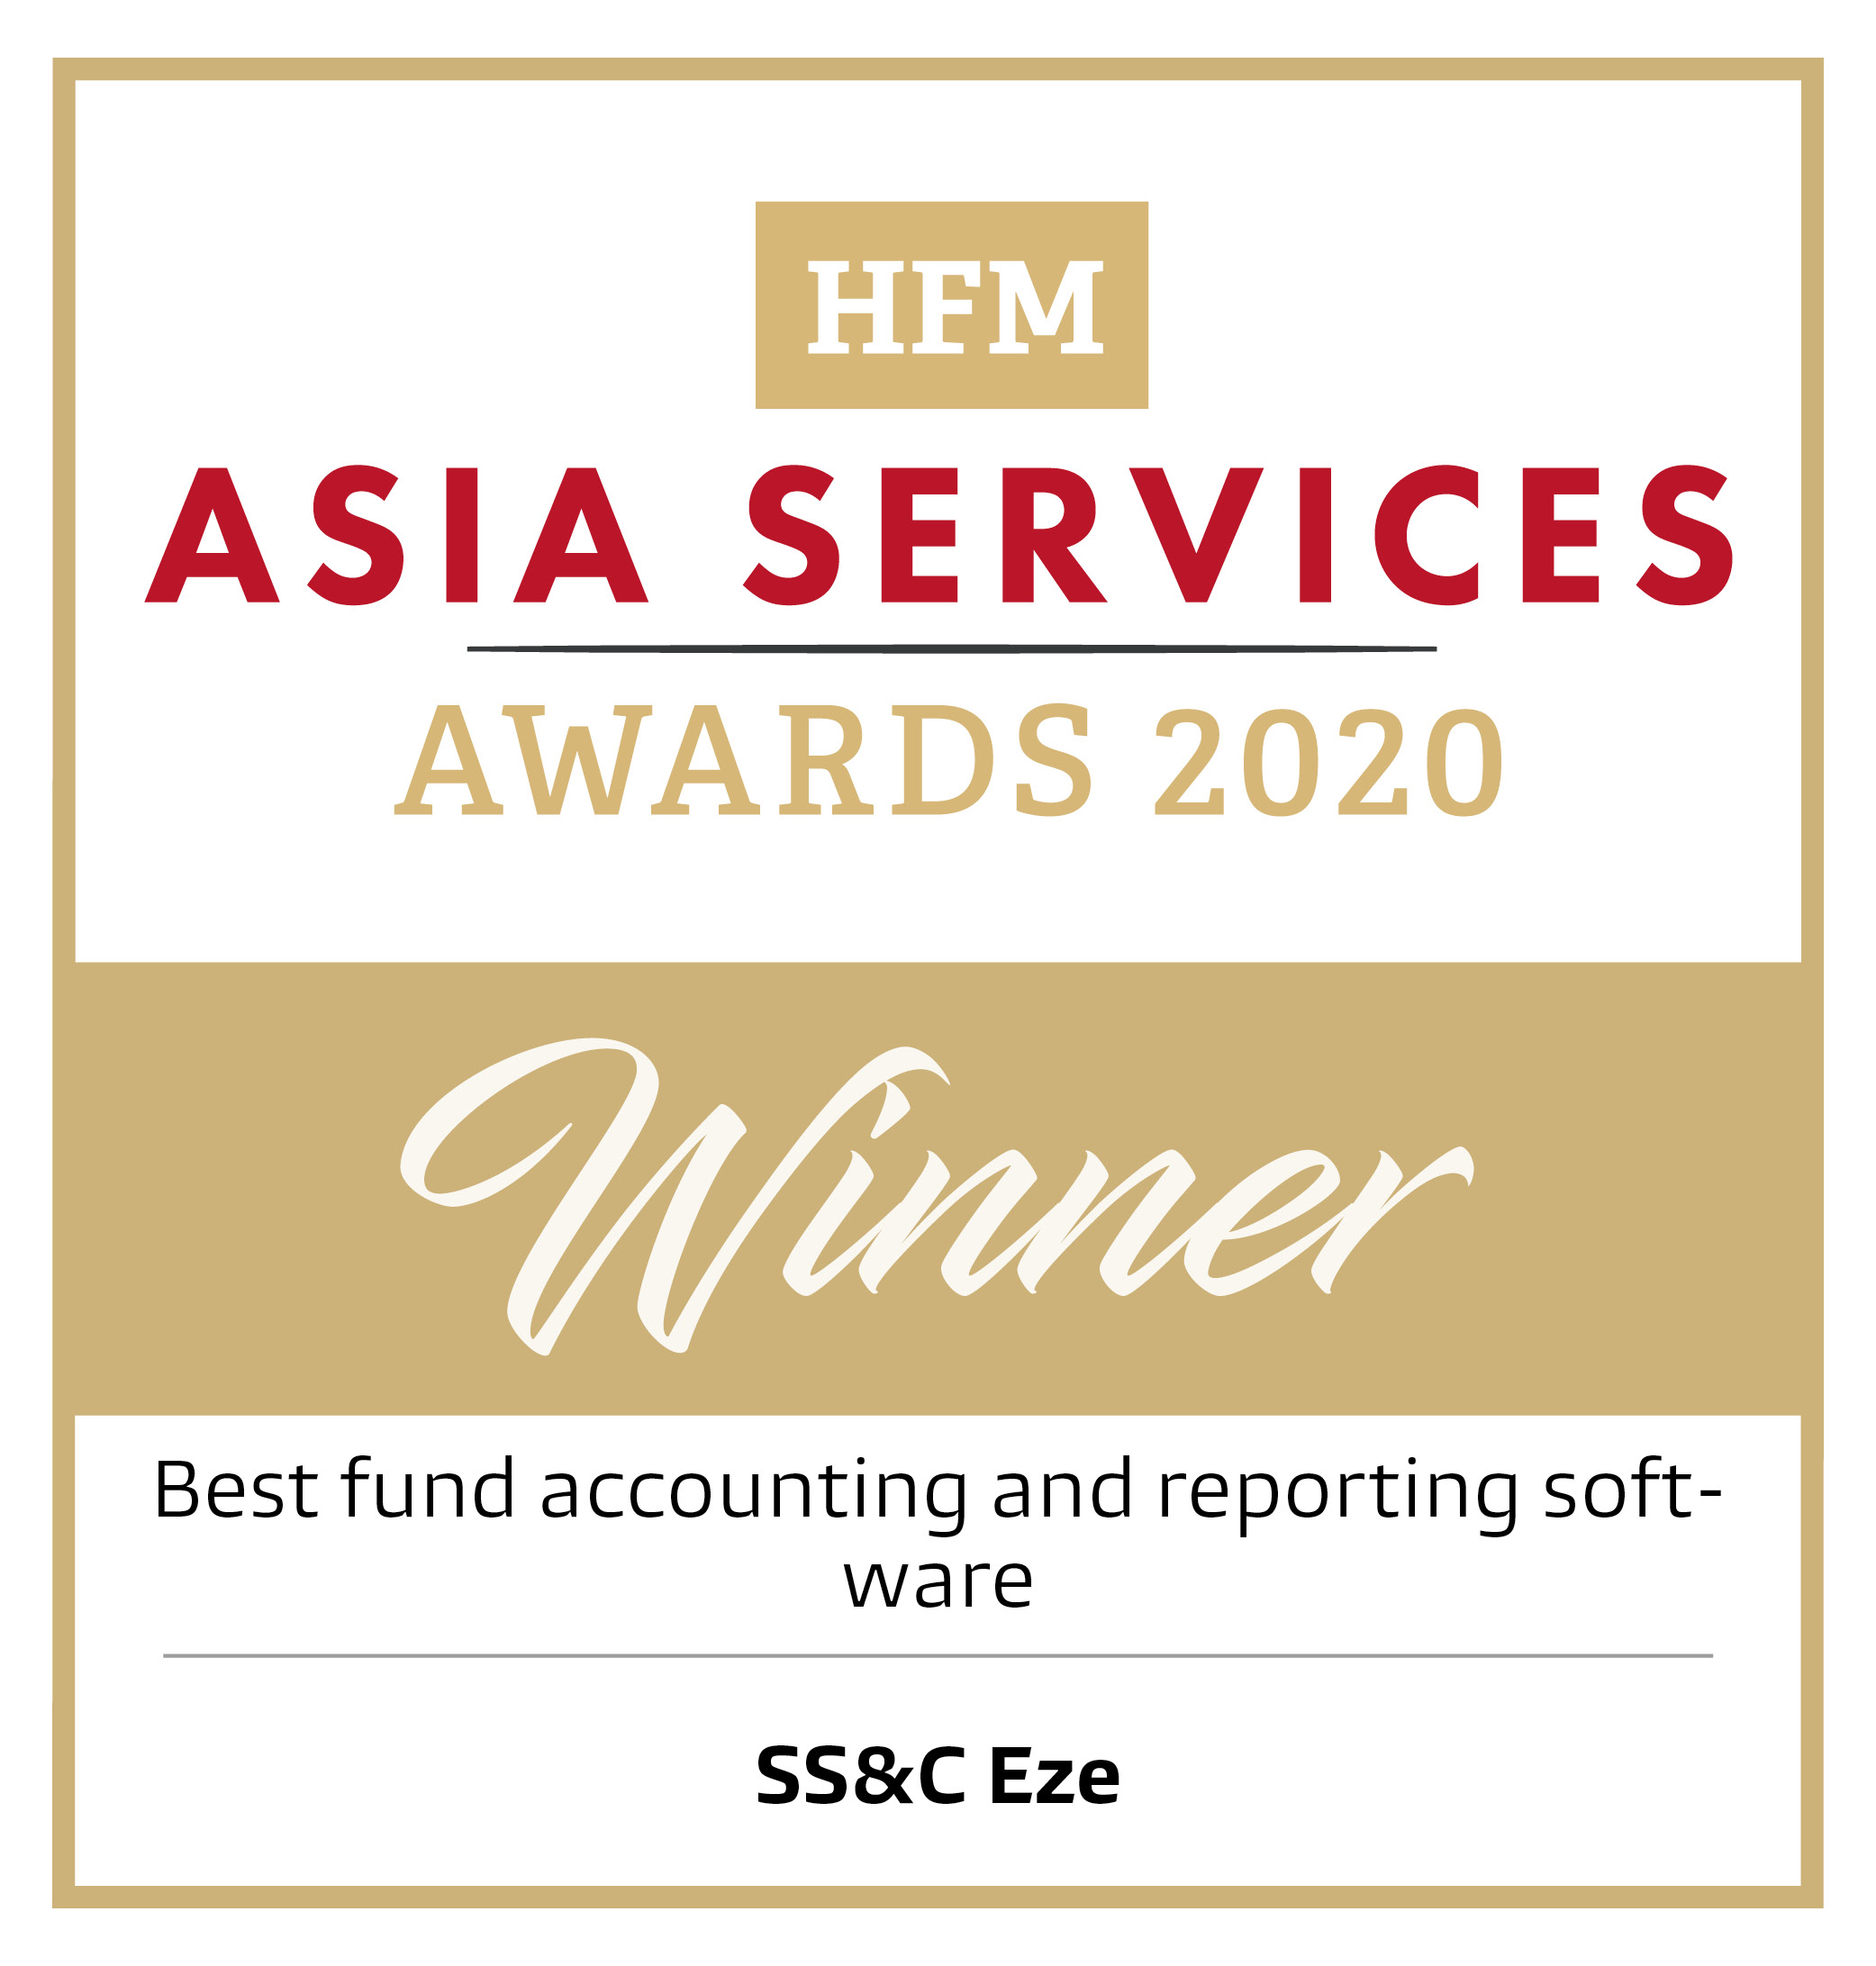 HFM Asia Services Awards 2020